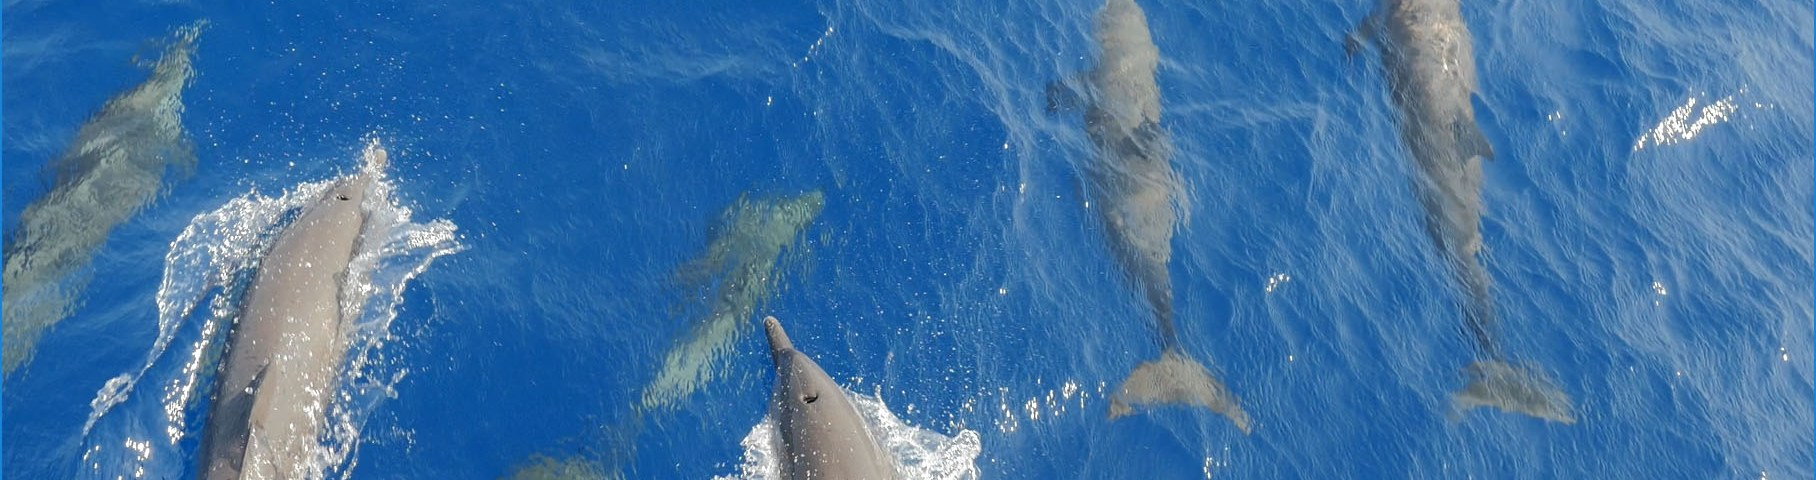 Dolphins swimming in the wake of a boat. Hello Ocean conducts first expedition exploring pressing ocean conservation topics of the Mesoamerican Reef.